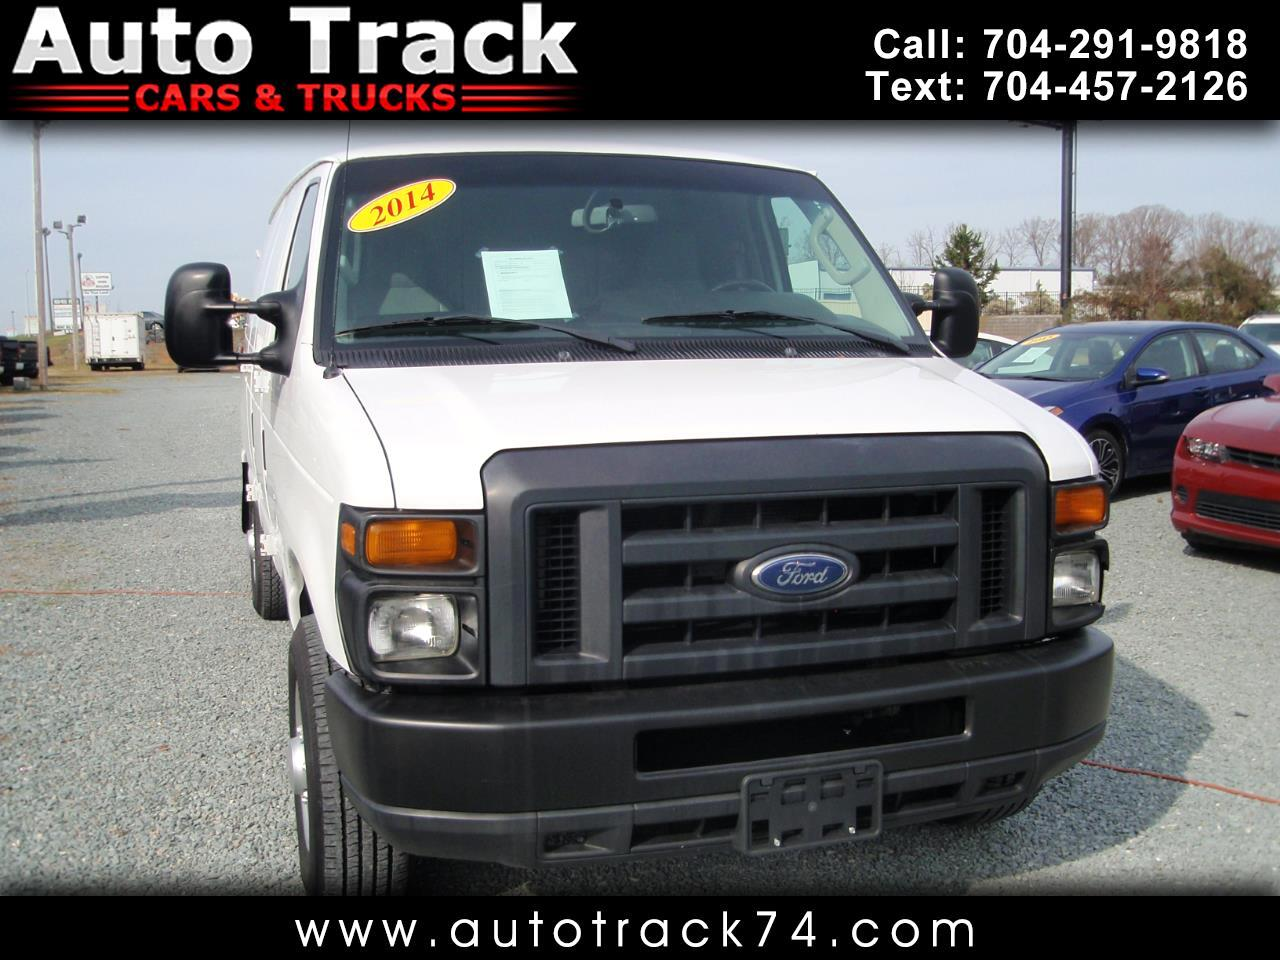 2014 Ford Econoline Cargo Van E-250 Ext Recreational